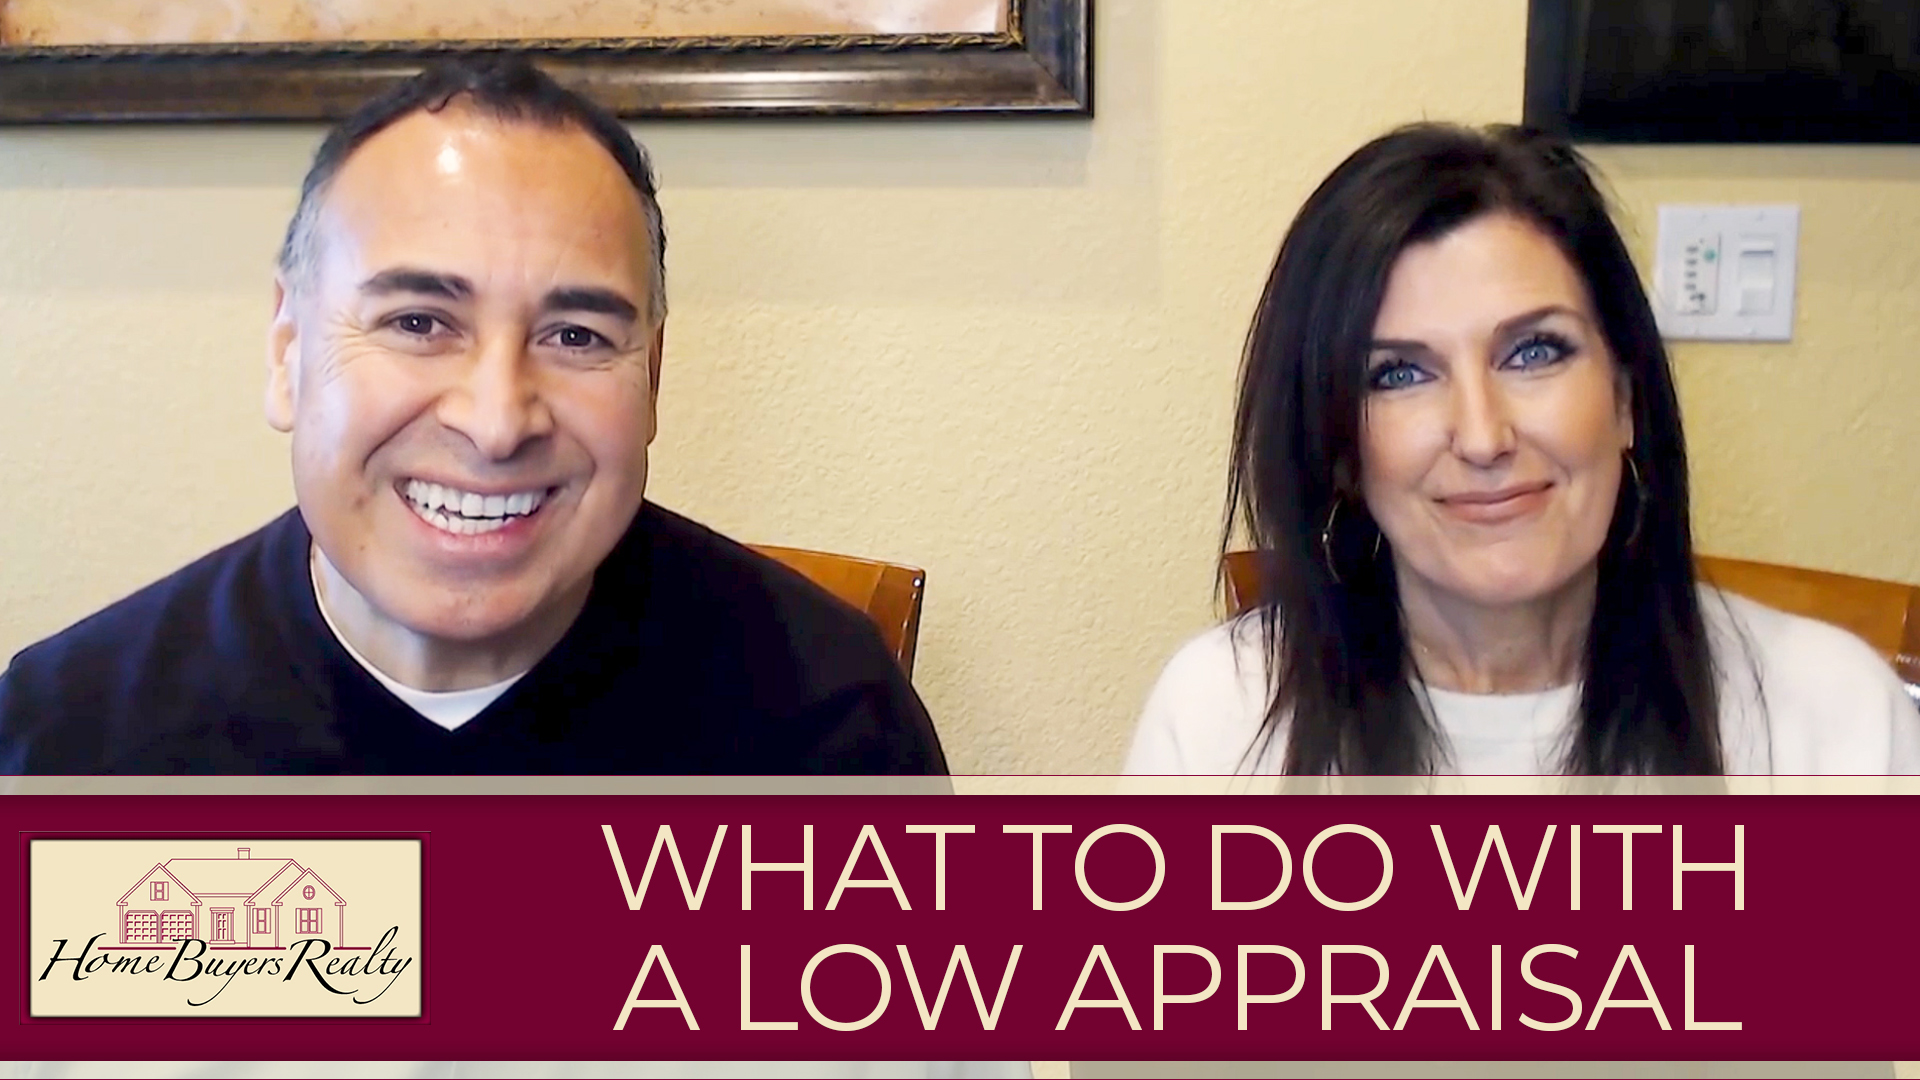 How Do We Handle Low Appraisals?